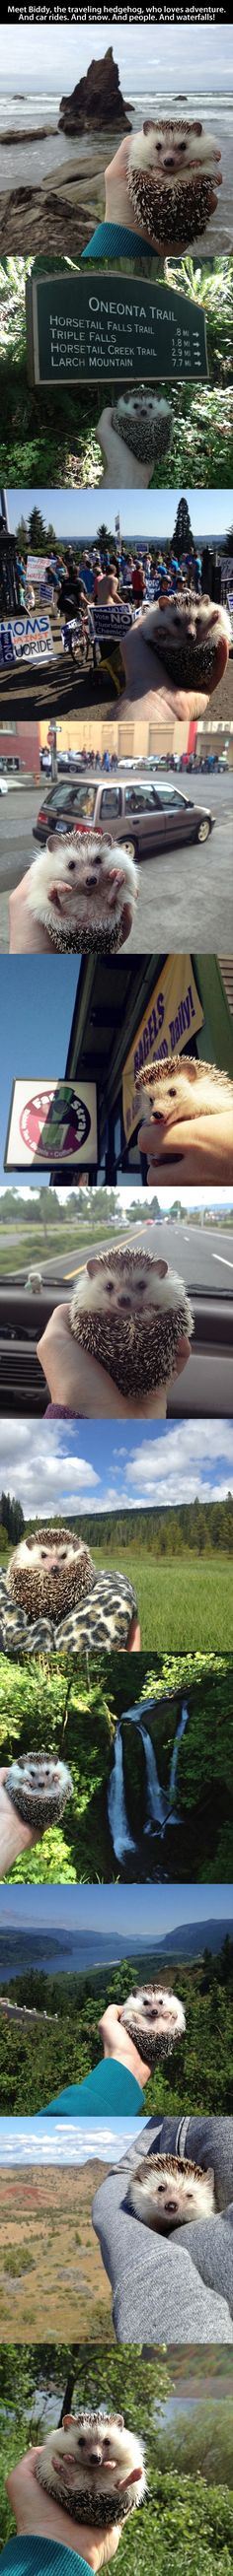 The Traveling Hedgehog!